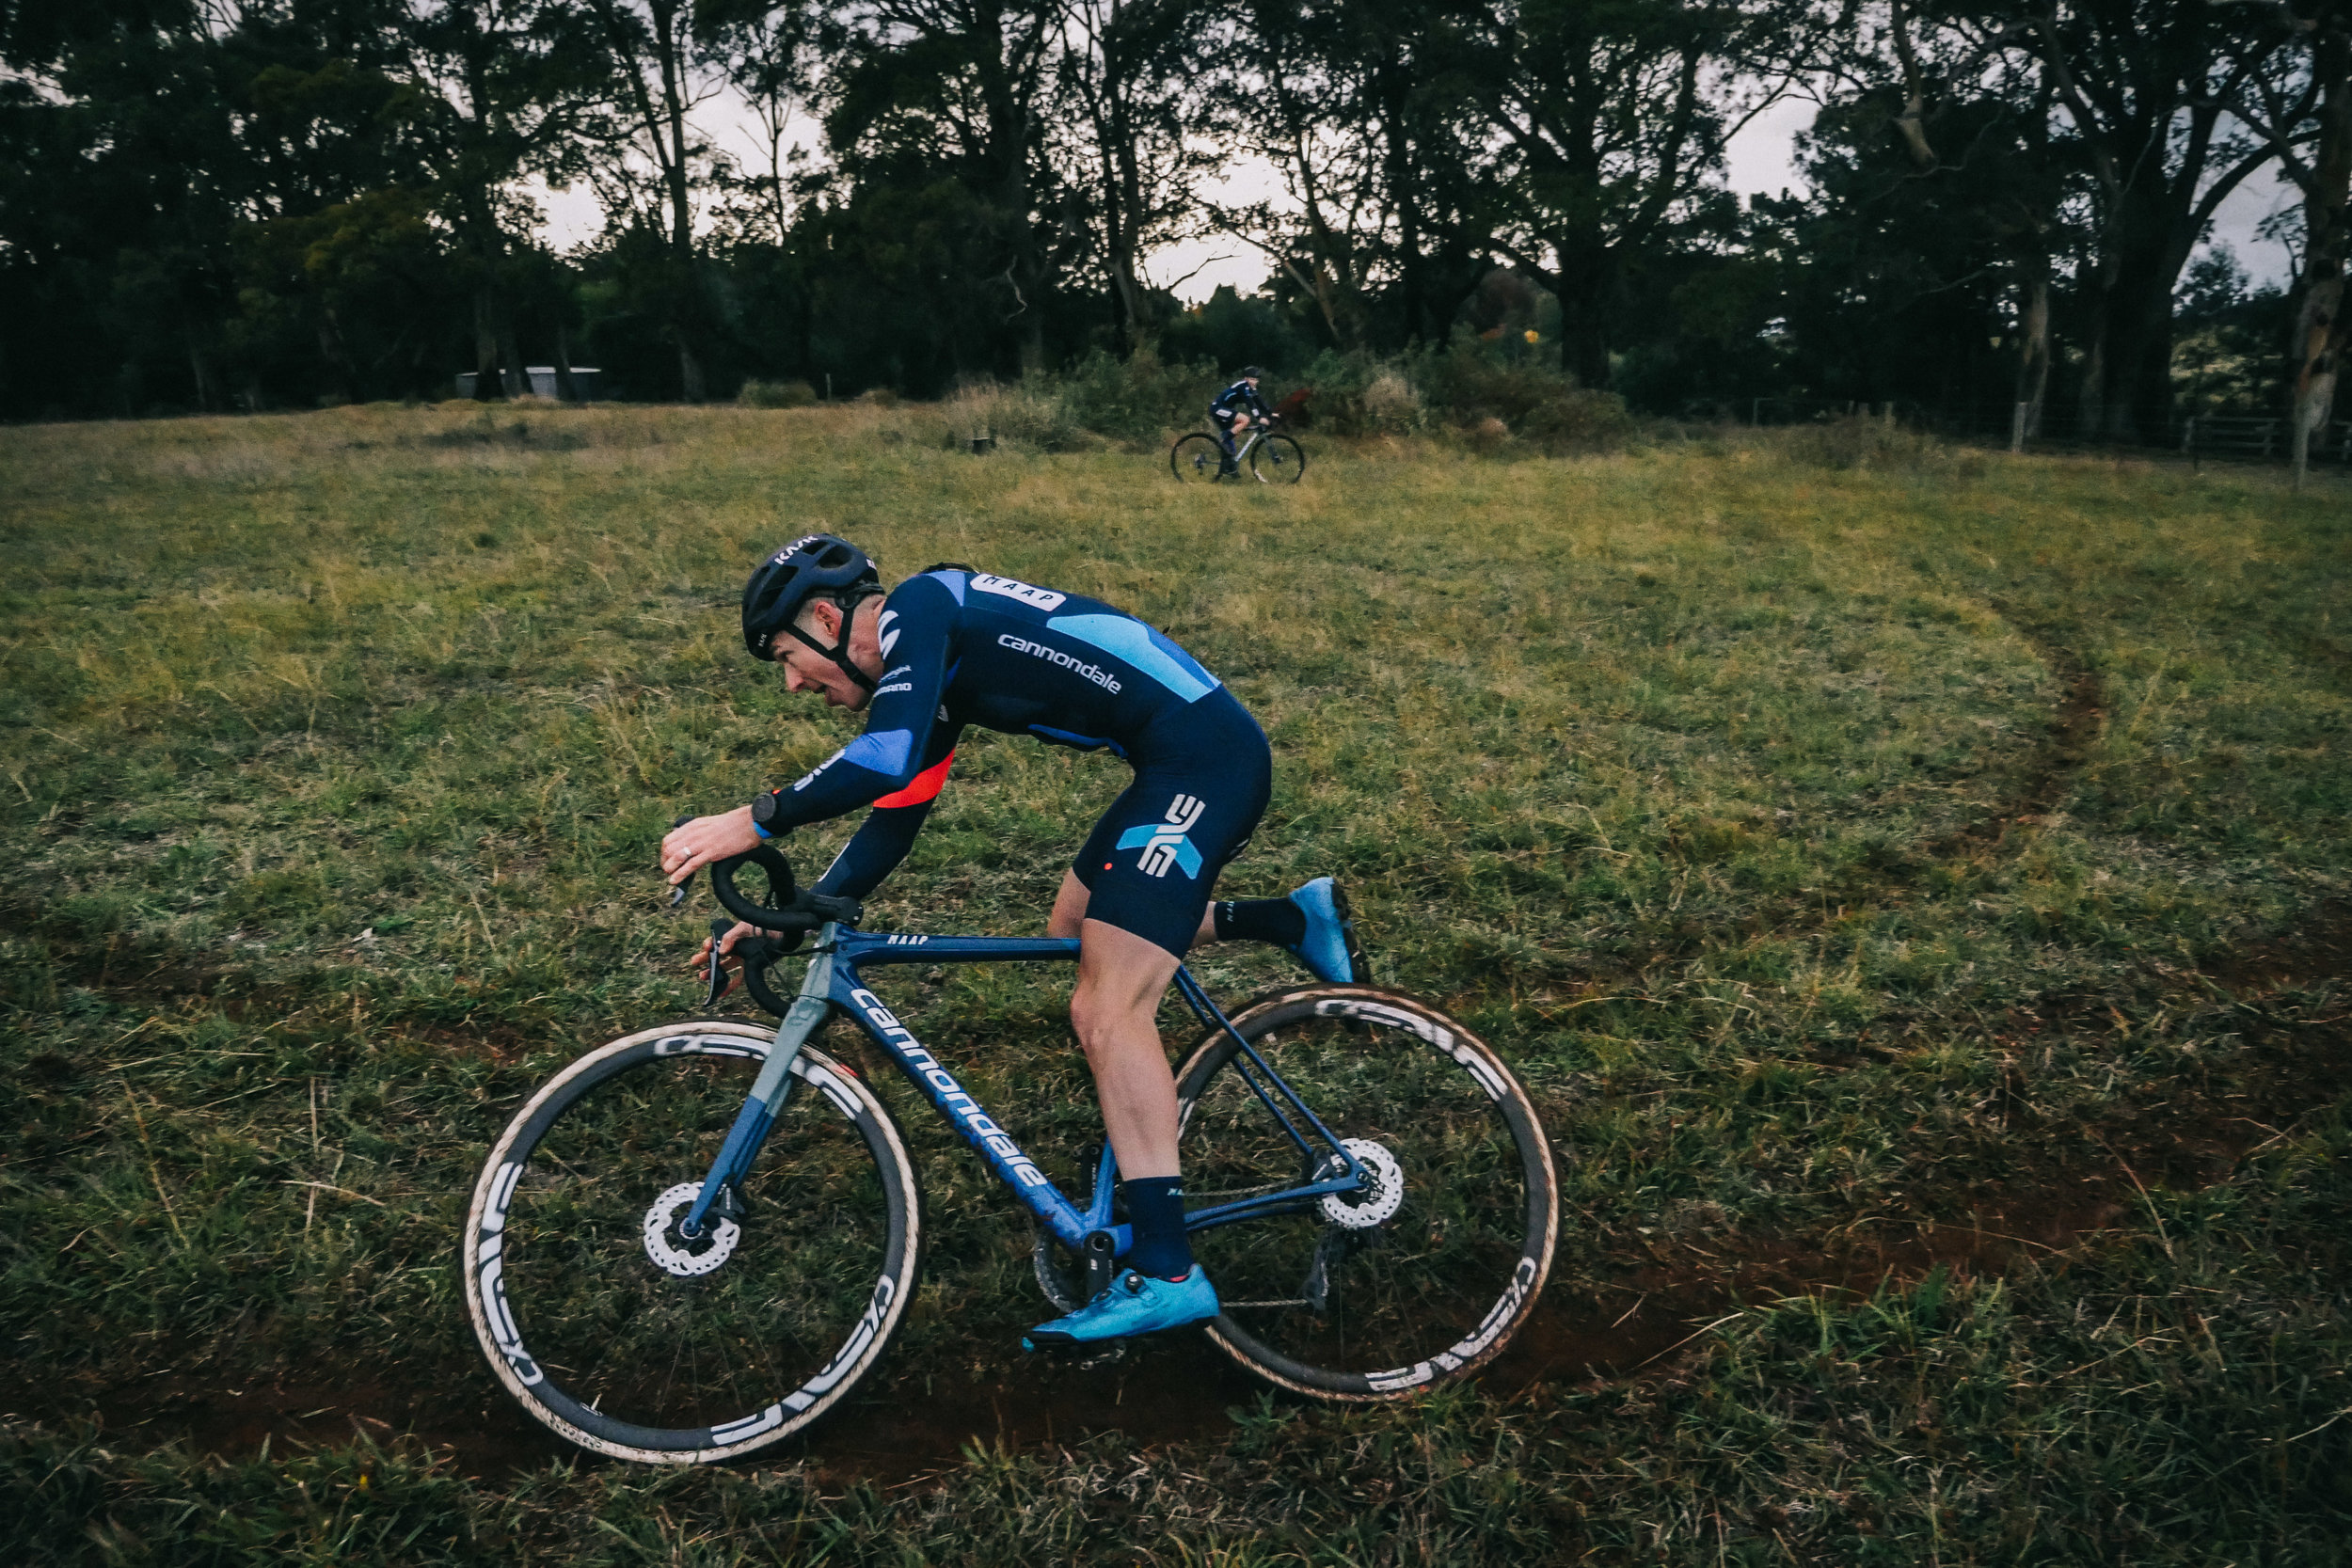 """Interested in racing 'cross? - """"Whether you are a seasoned cyclocross racer that eats ruts for breakfast, stepped up to the line a few times and want to get to the next level, or thinking about entering your first race ever, it's time to get down and dirty and start training.""""For our friends at MAAP, Fiona and the team put together handy guide on how to train for CX, including interval sessions and tips for riding technical sections."""